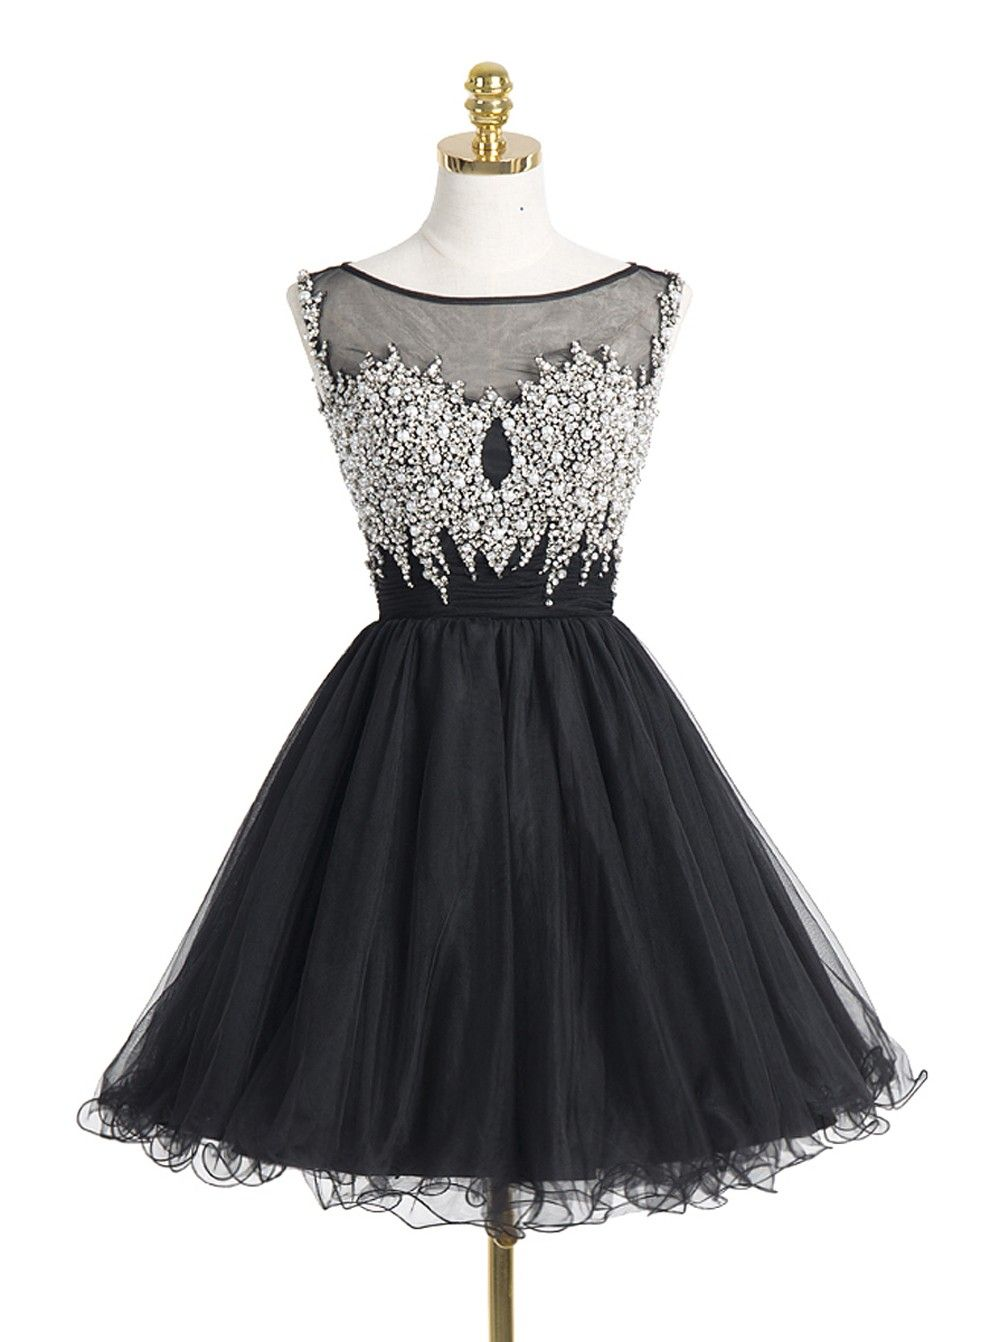 Scoop neck Short Black Tulle Homecoming Dresses Crystals Women Party Dresses